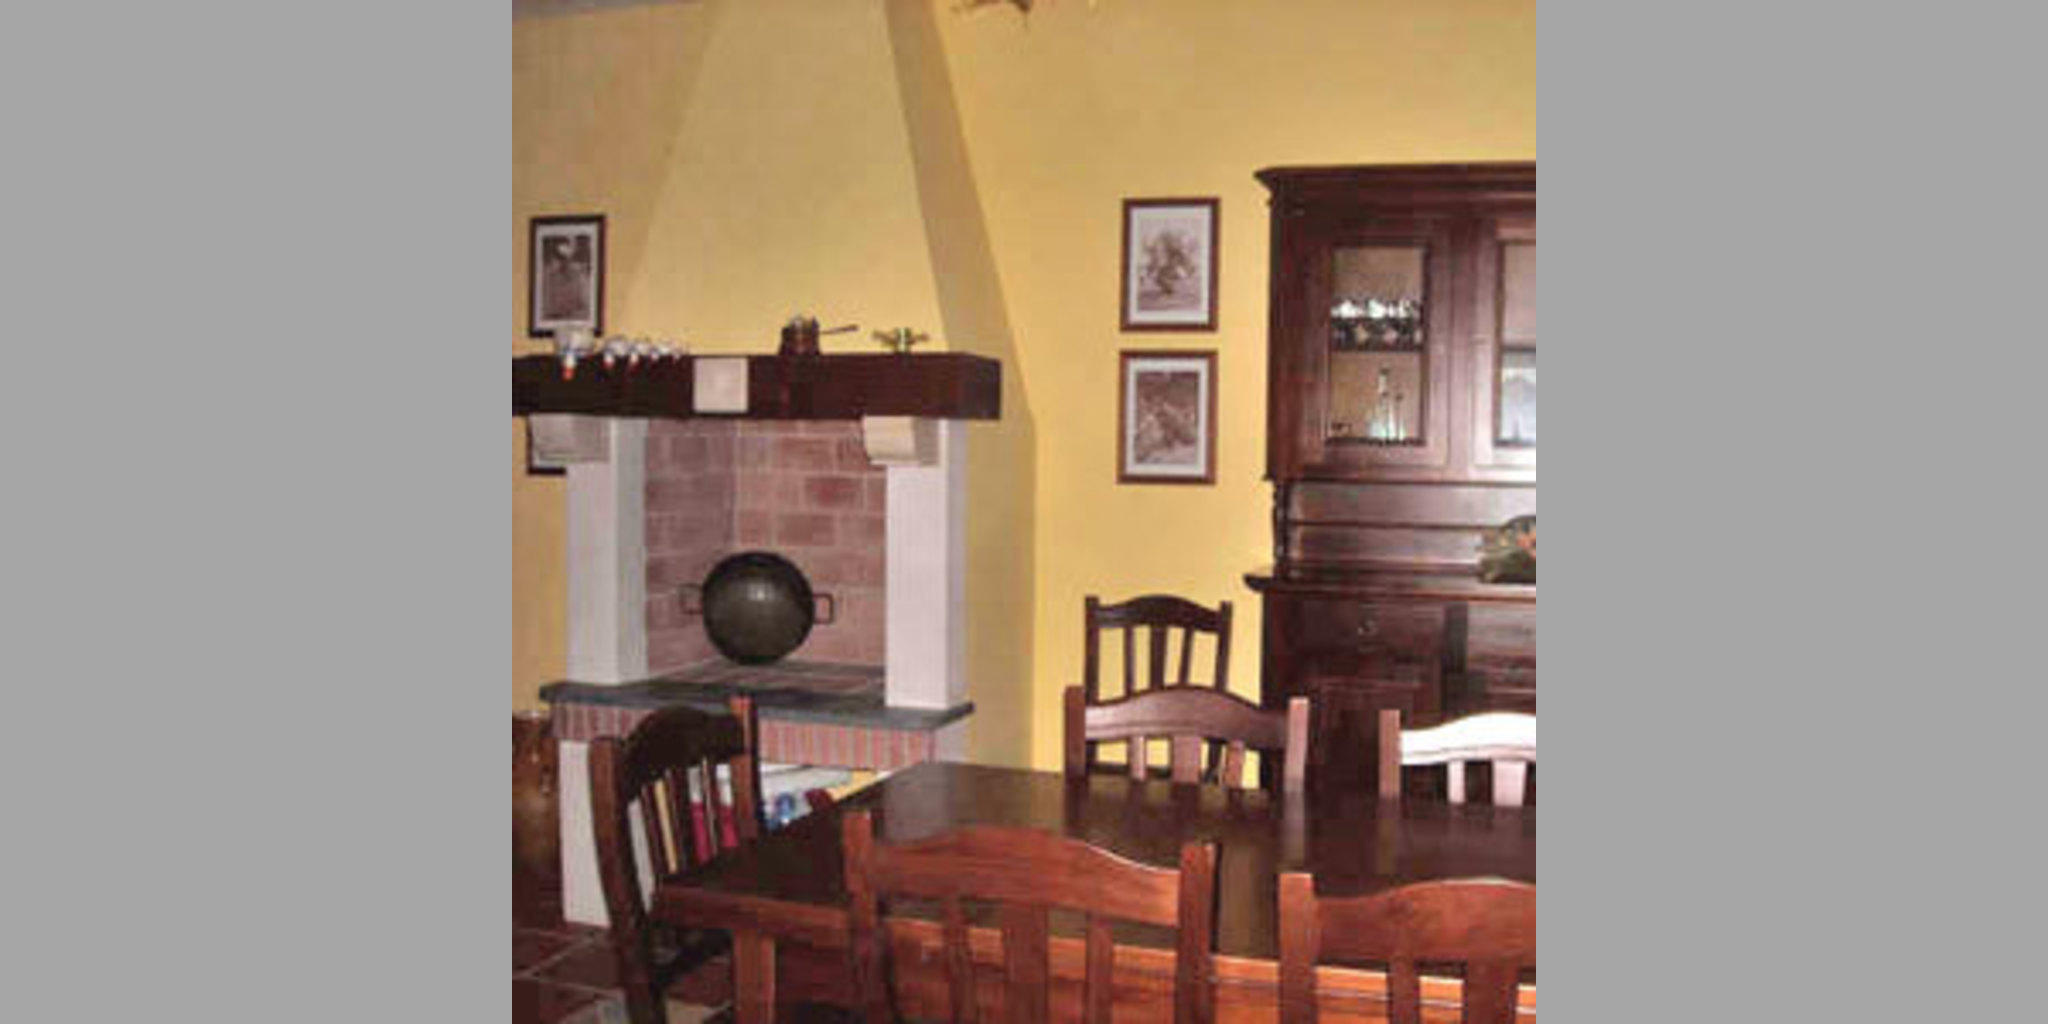 Bed & Breakfast Conversano - San Francesco